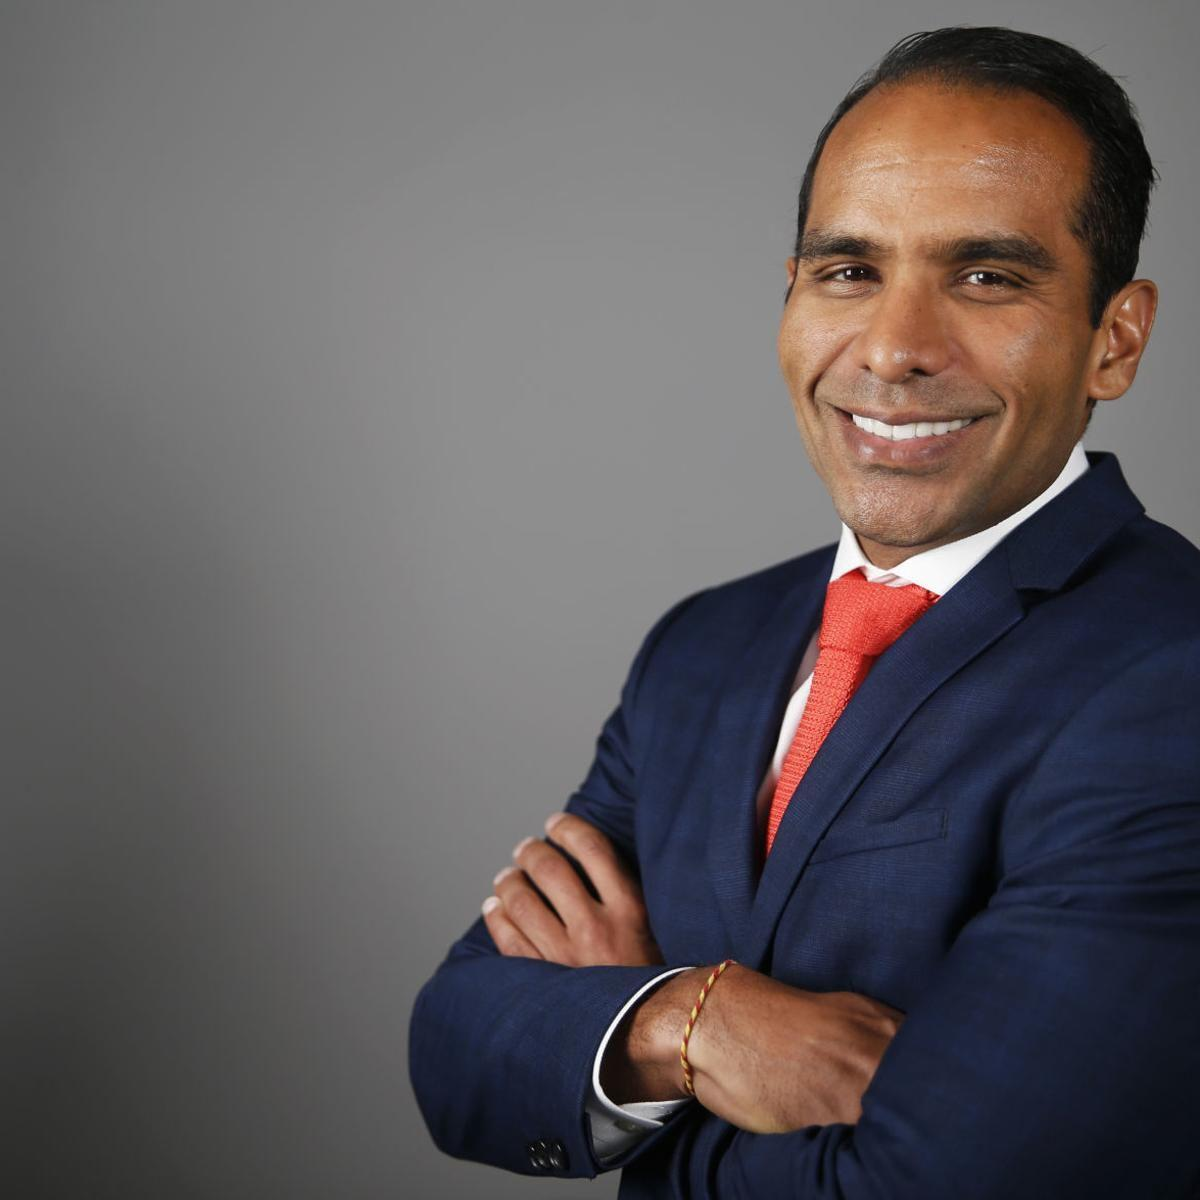 Neil Amin is president and CEO of Shamin Hotels